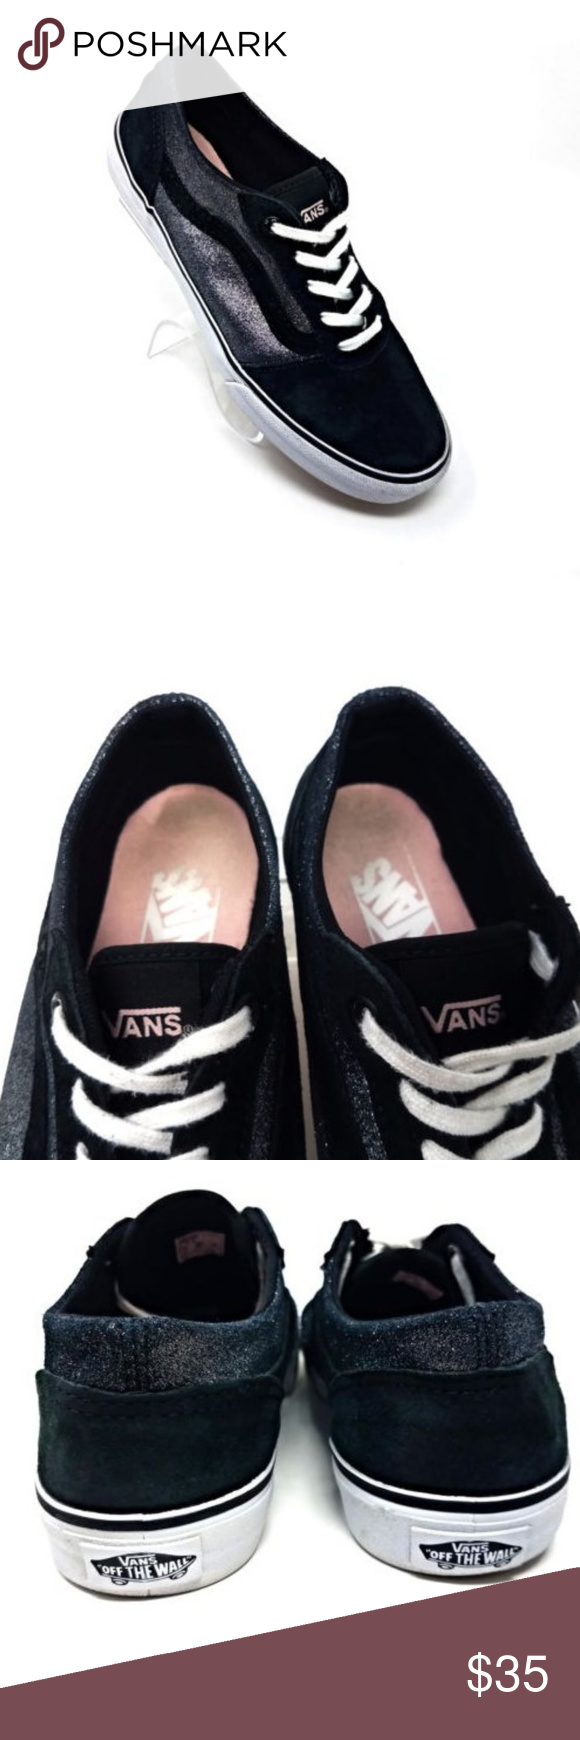 d275583c81aa94 Vans Off The Wall Black Suede Silver Sparkle Lace Black suede uppers Silver  sparkle side-panel accent No tread wear Lace-up closure Actual  Measurements  TAG ...